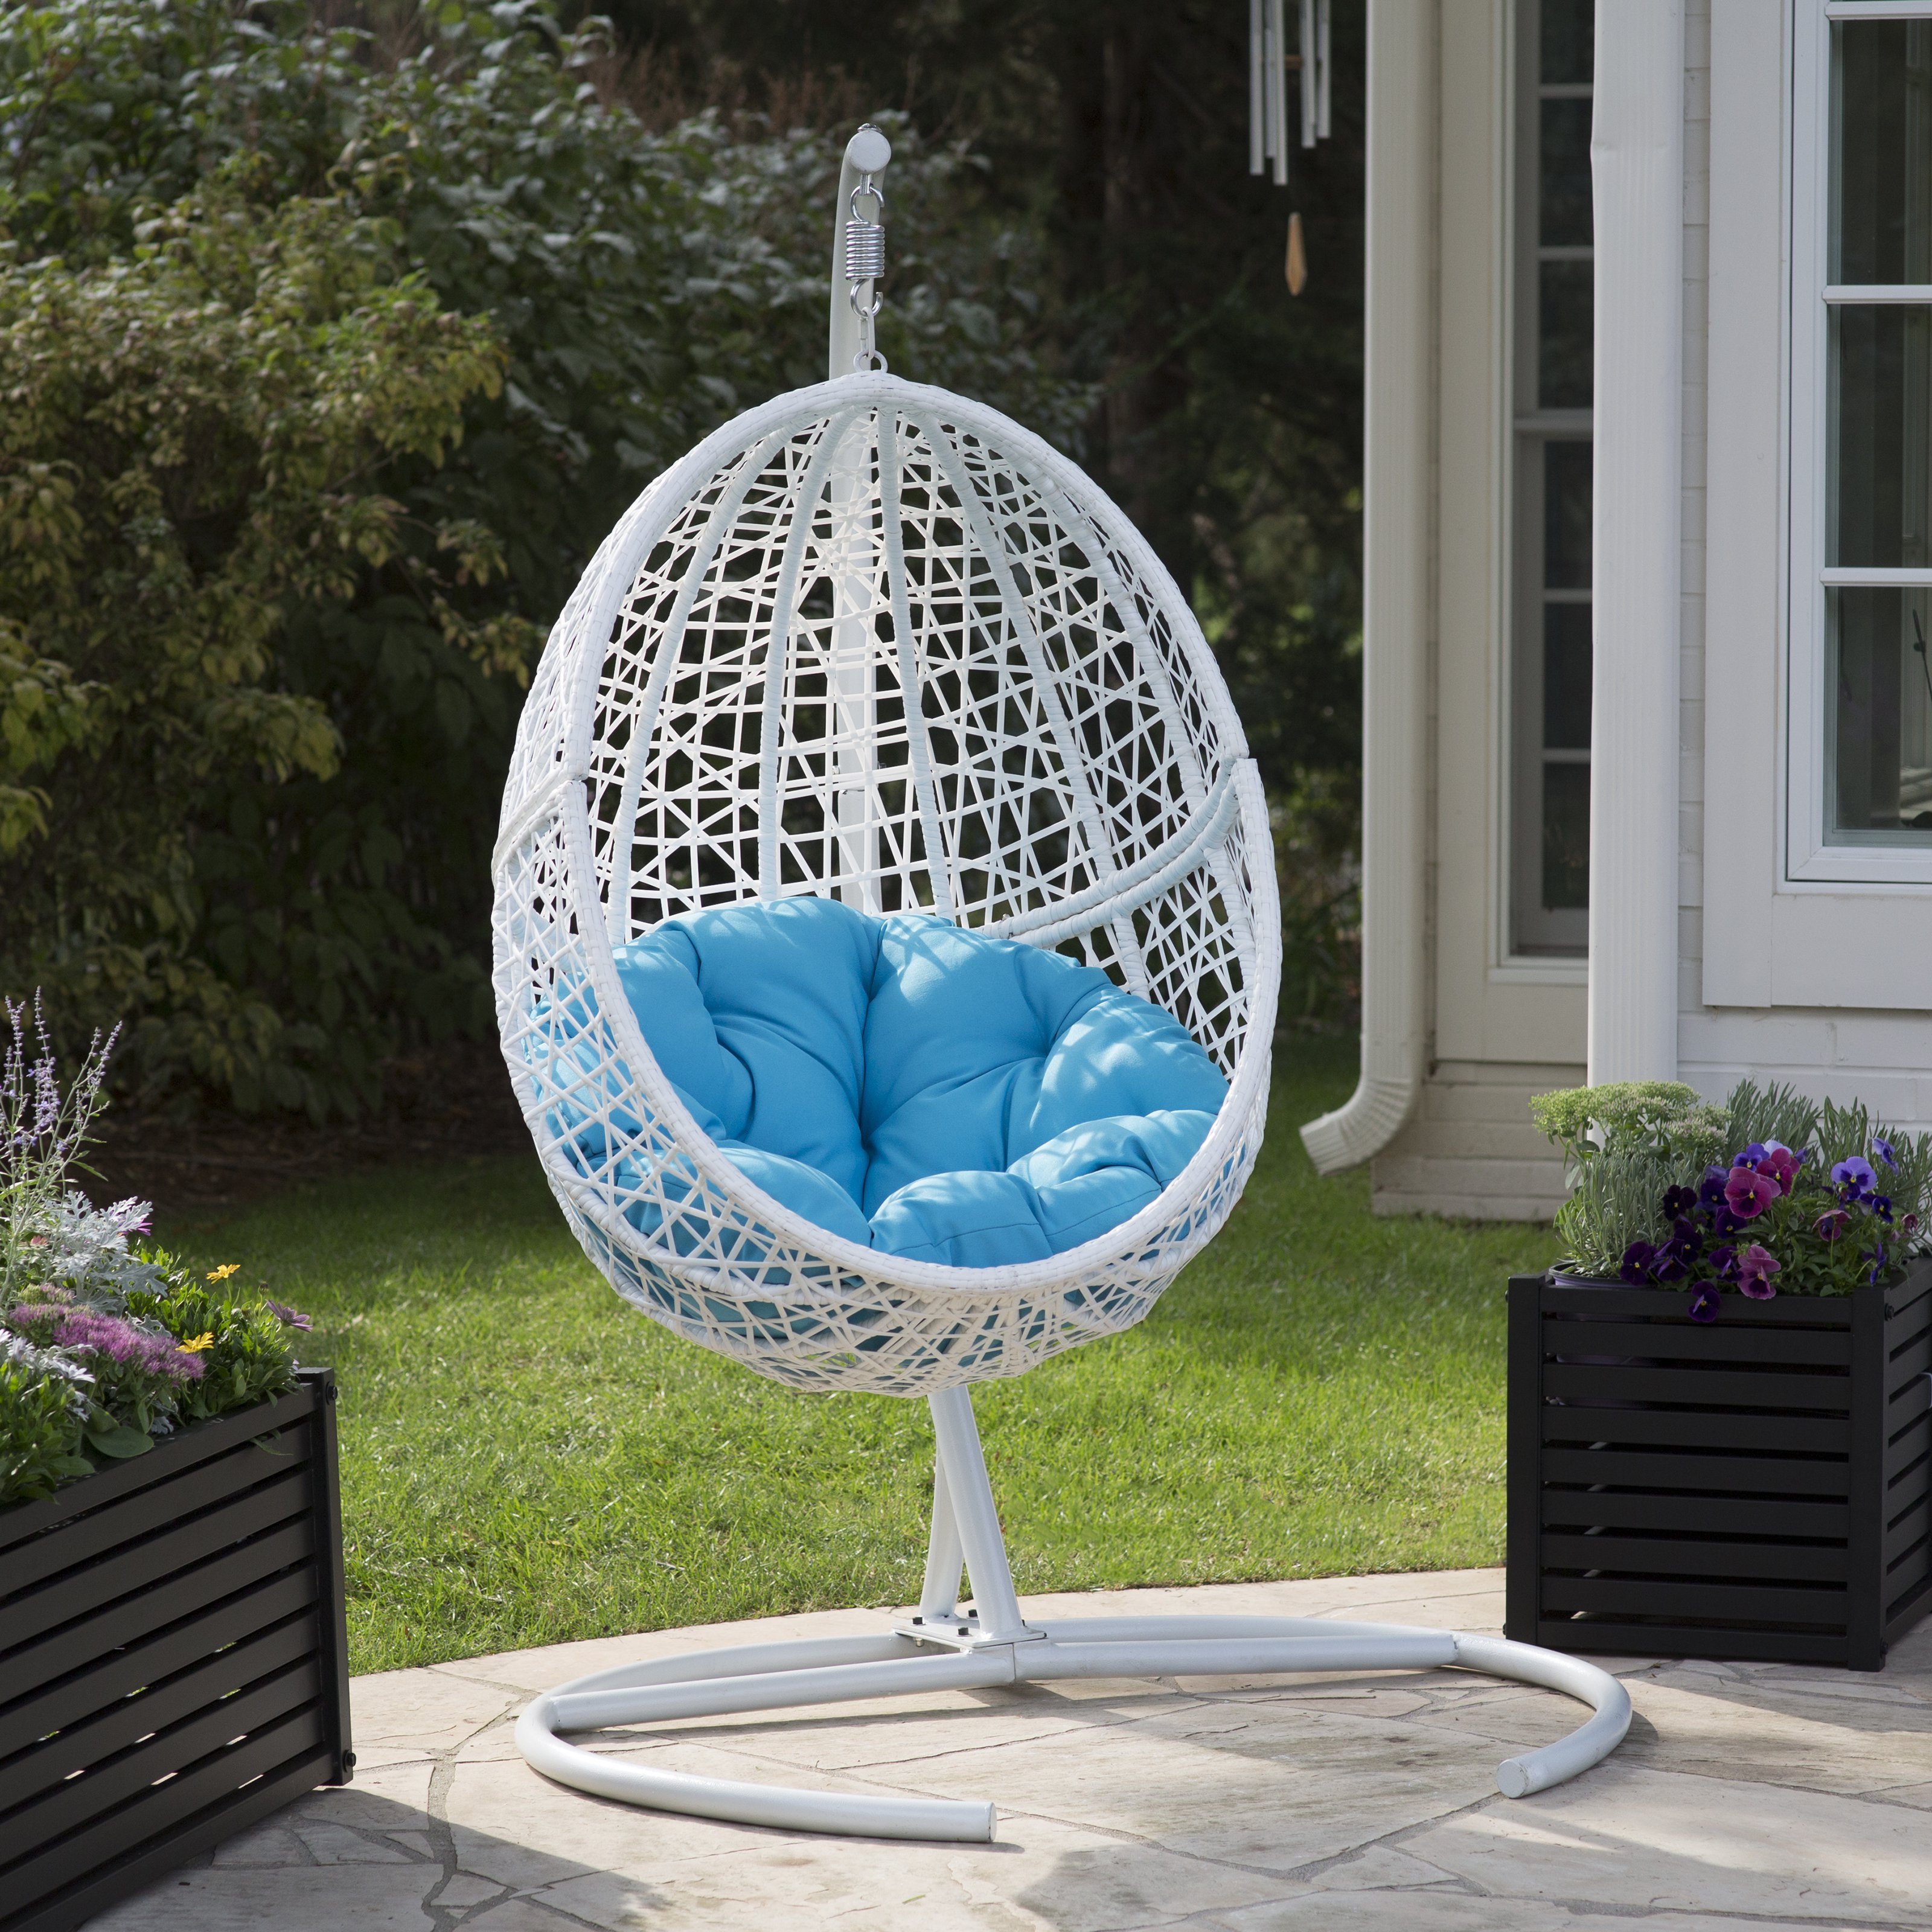 Egg Hanging Chair Island Bay Resin Wicker Blanca Hanging Egg Chair With